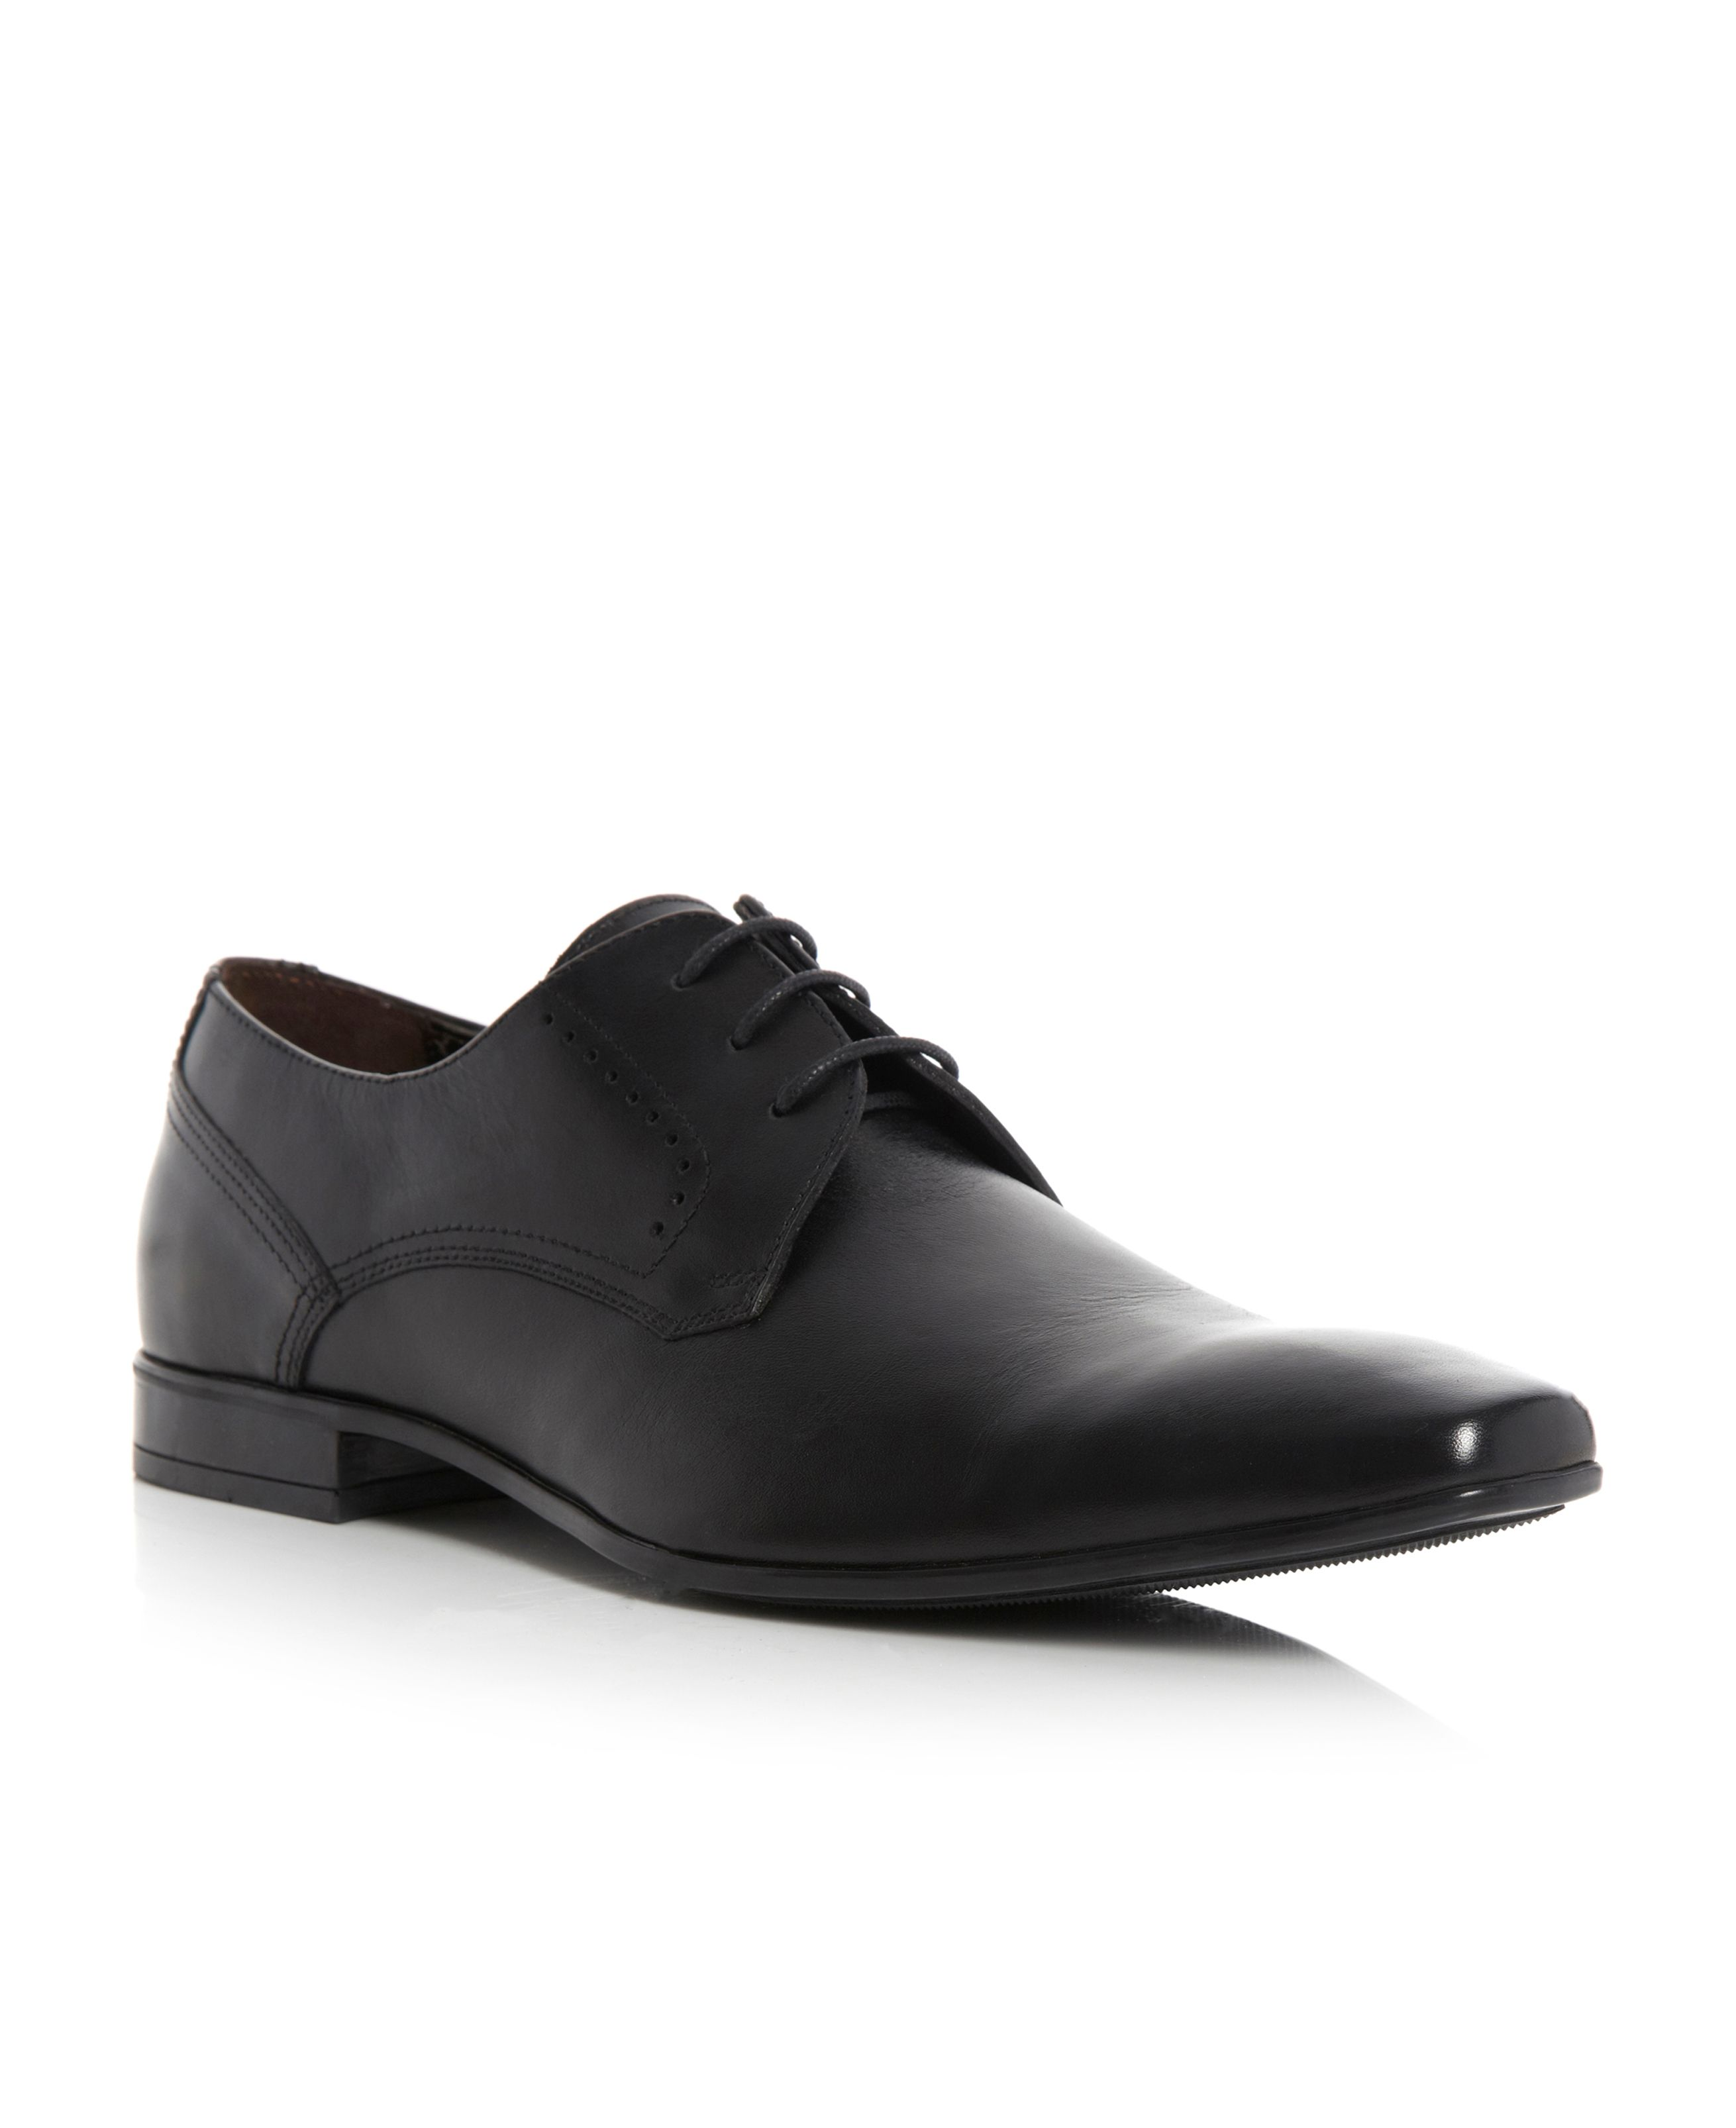 Ascot chisel toe formal shoes